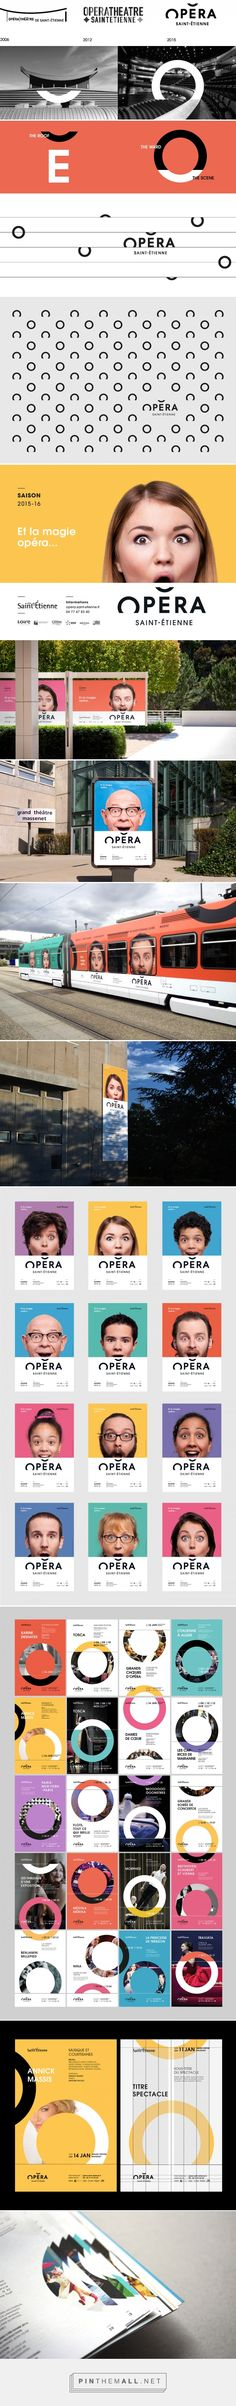 Saint Etienne Opera House - Brand design on Behance - created via http://pinthemall.net